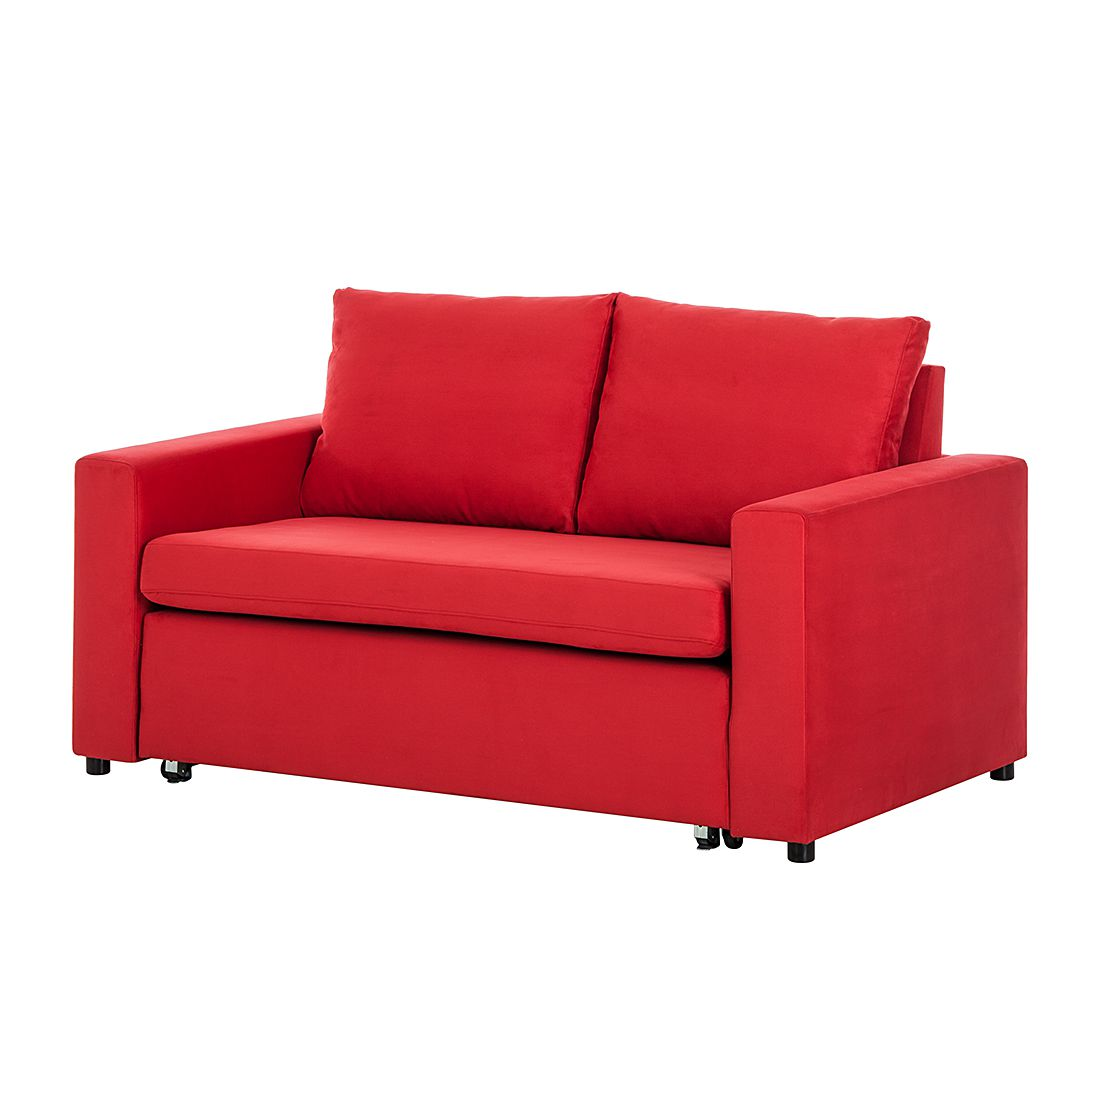 Schlafsofa Latina – Microfaser Rot, roomscape online bestellen